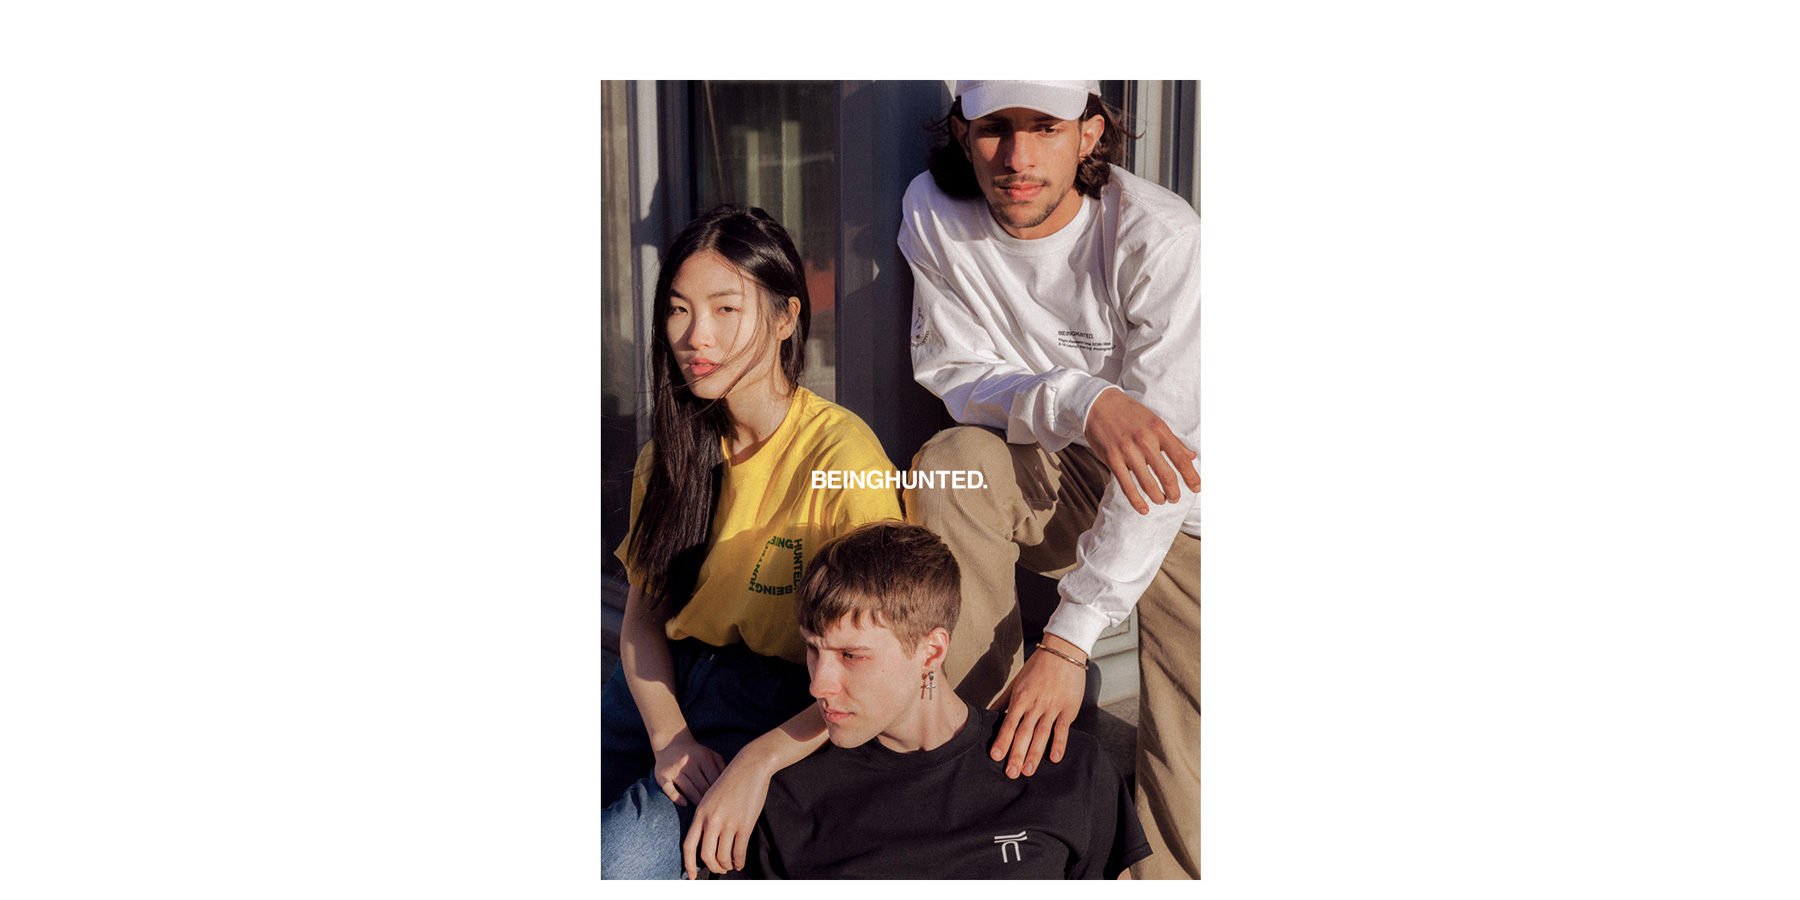 BEINGHUNTED. Spring/Summer 2017 Lookbook Group